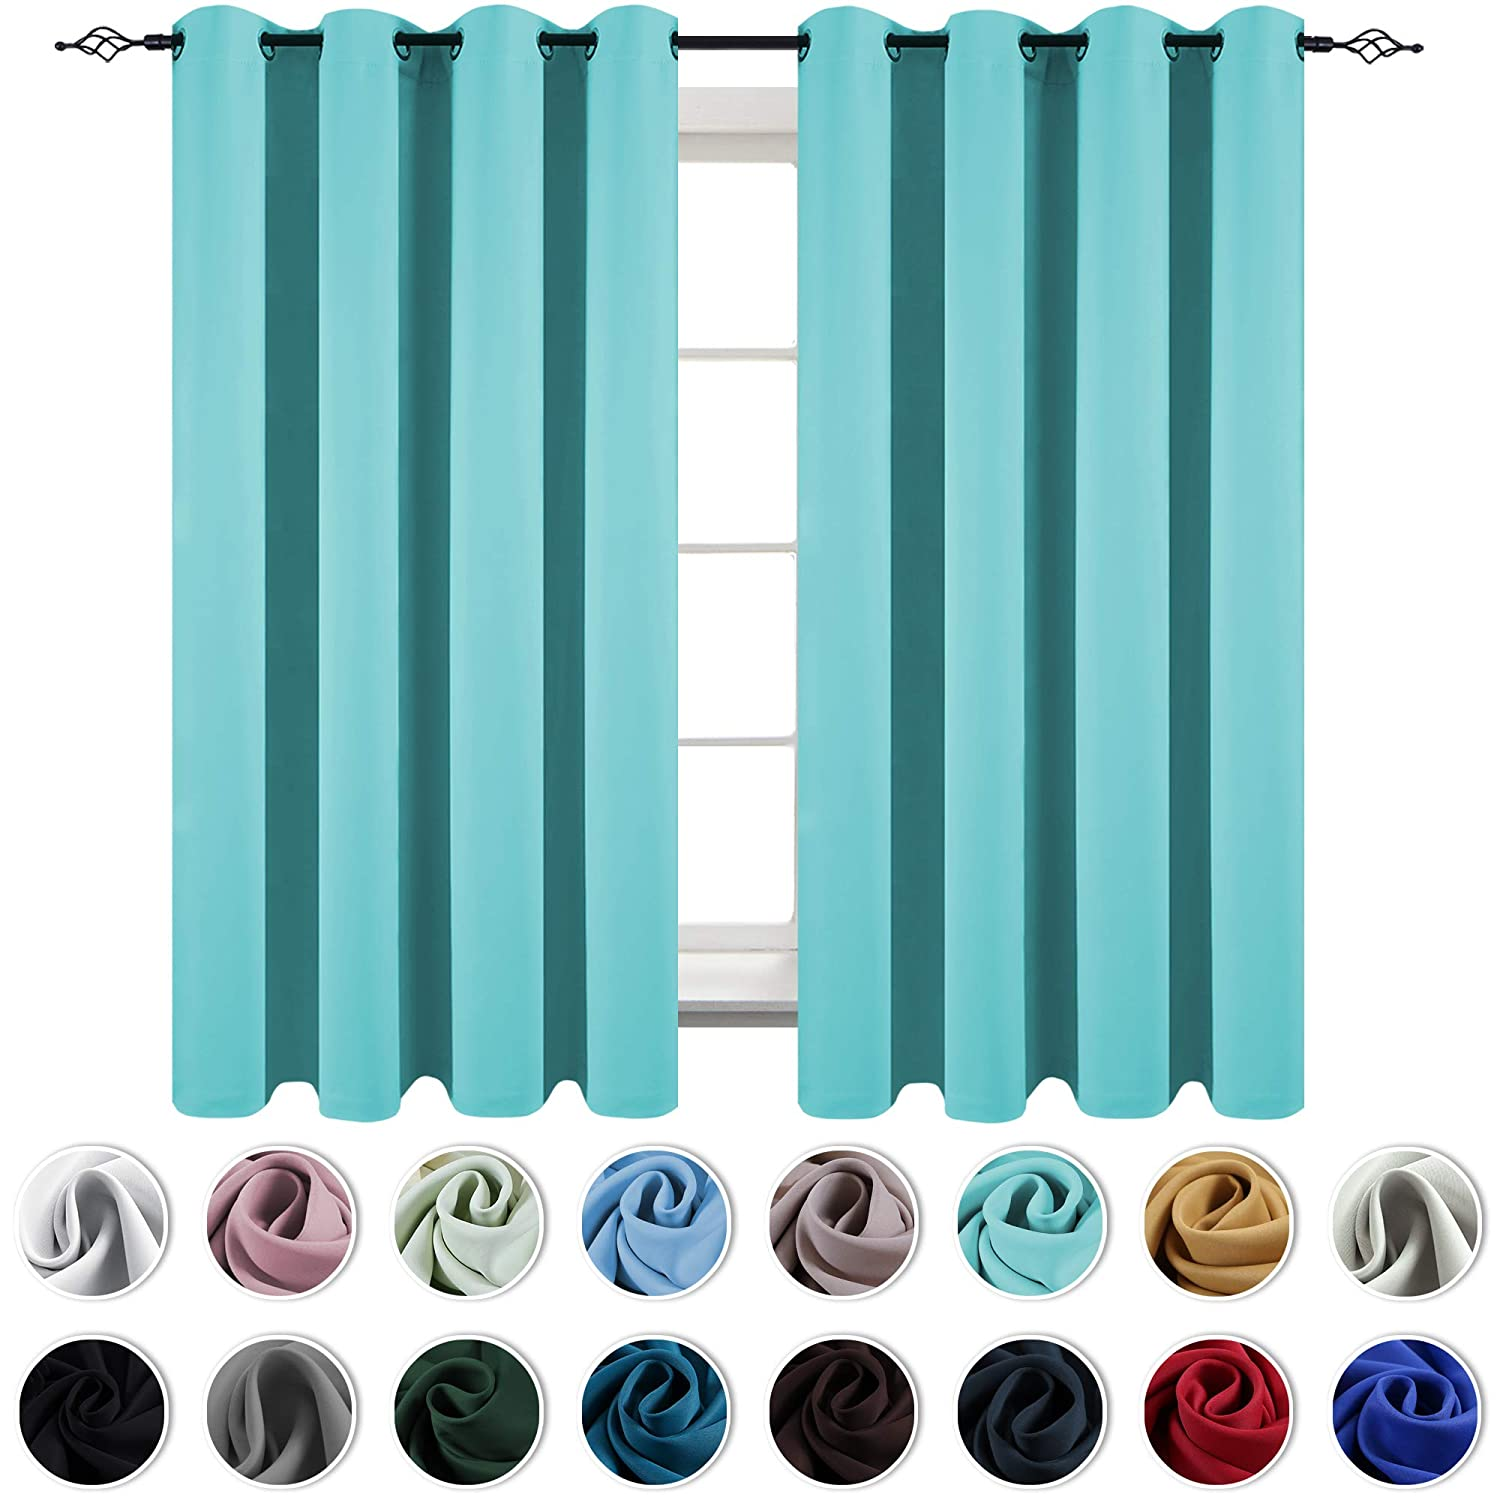 KEQIAOSUOCAI Turquoise 72 Inch Bedroom Curtains Window Treatment Thermal Insulated Room Darkening Solid Grommet Top Blackout Drapes for Kids Room 2 Panels 52 by 72 Inch Length